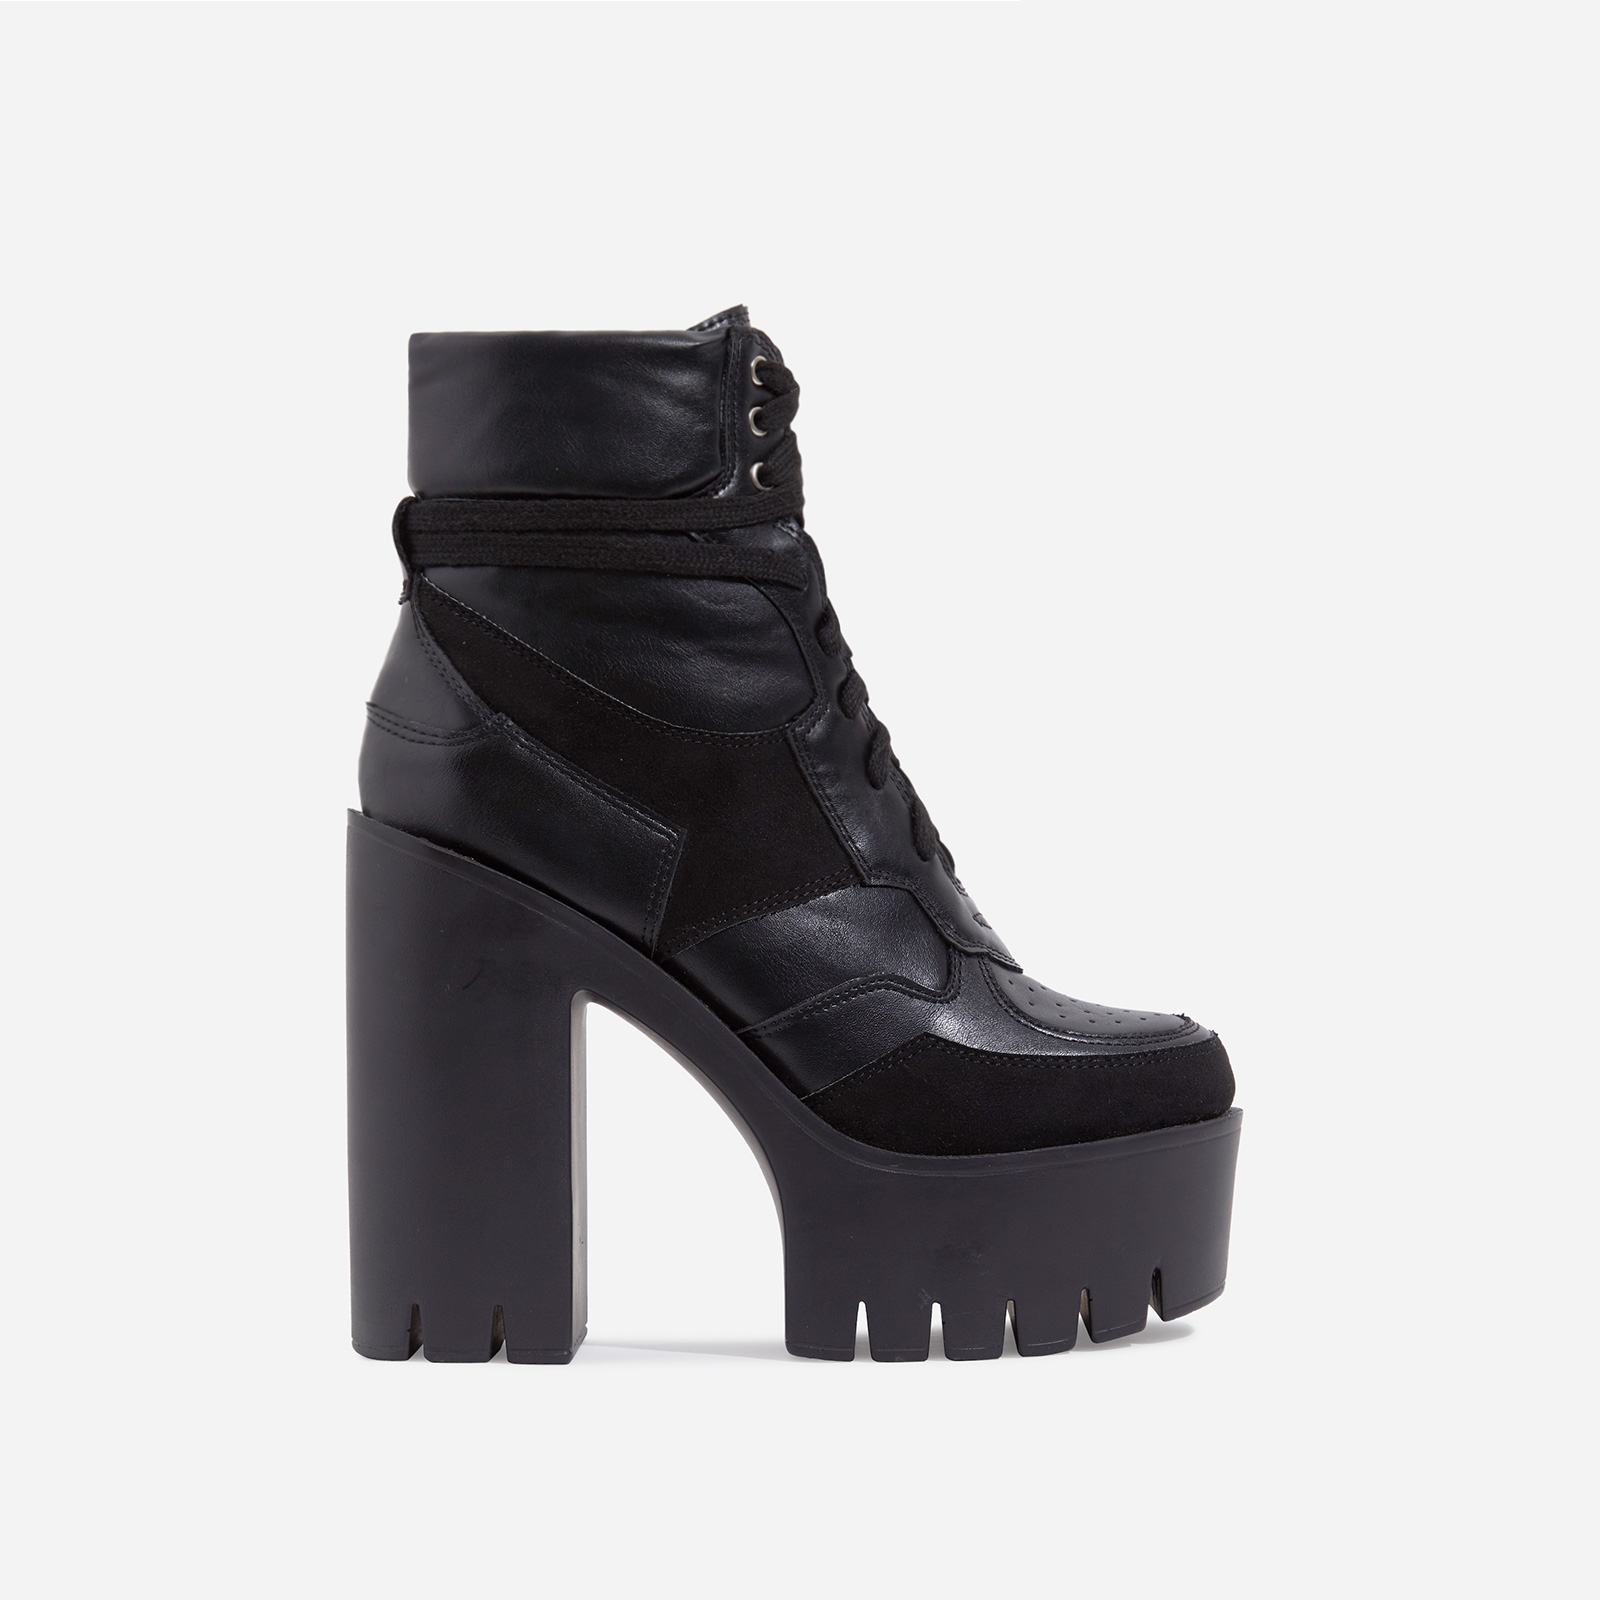 Penni Platform Lace Up Cleated Sole Ankle Bike Boot In Black Faux Leather